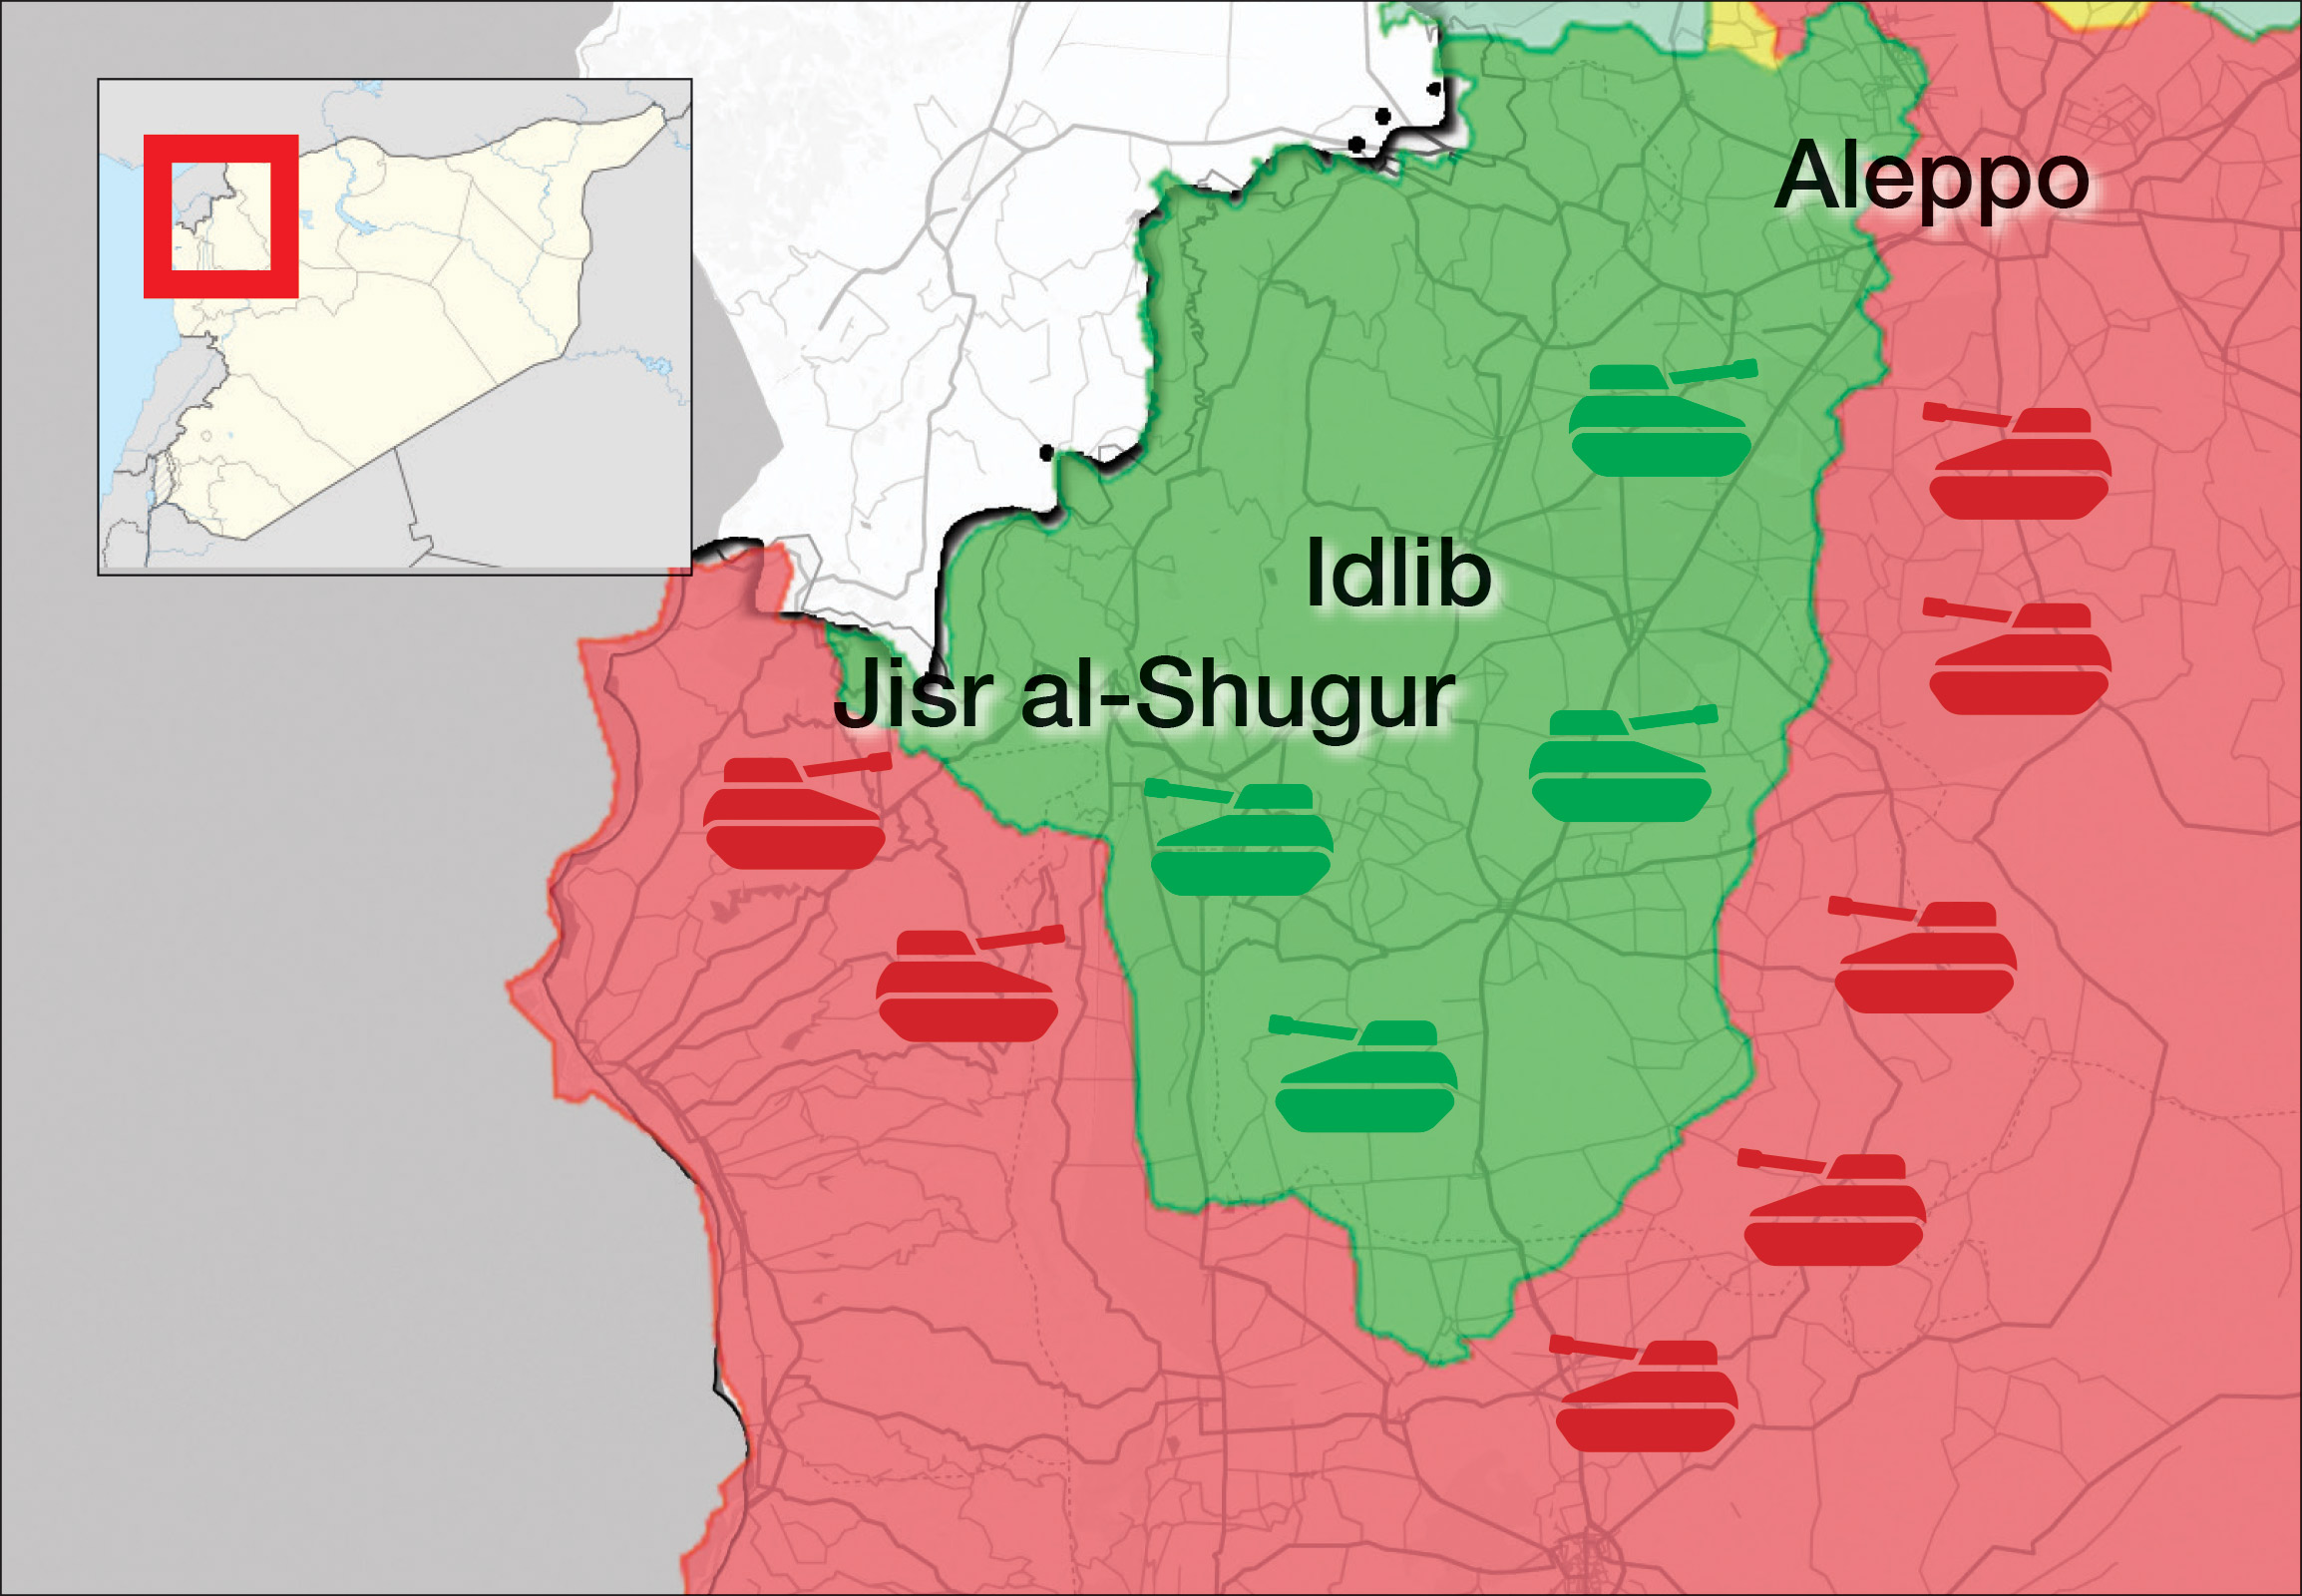 A map showing the military control and the military deployment of both the Syrian opposition and the Syrian regime in Idlib and its surrounding -September 1, 2018 (Livemap)